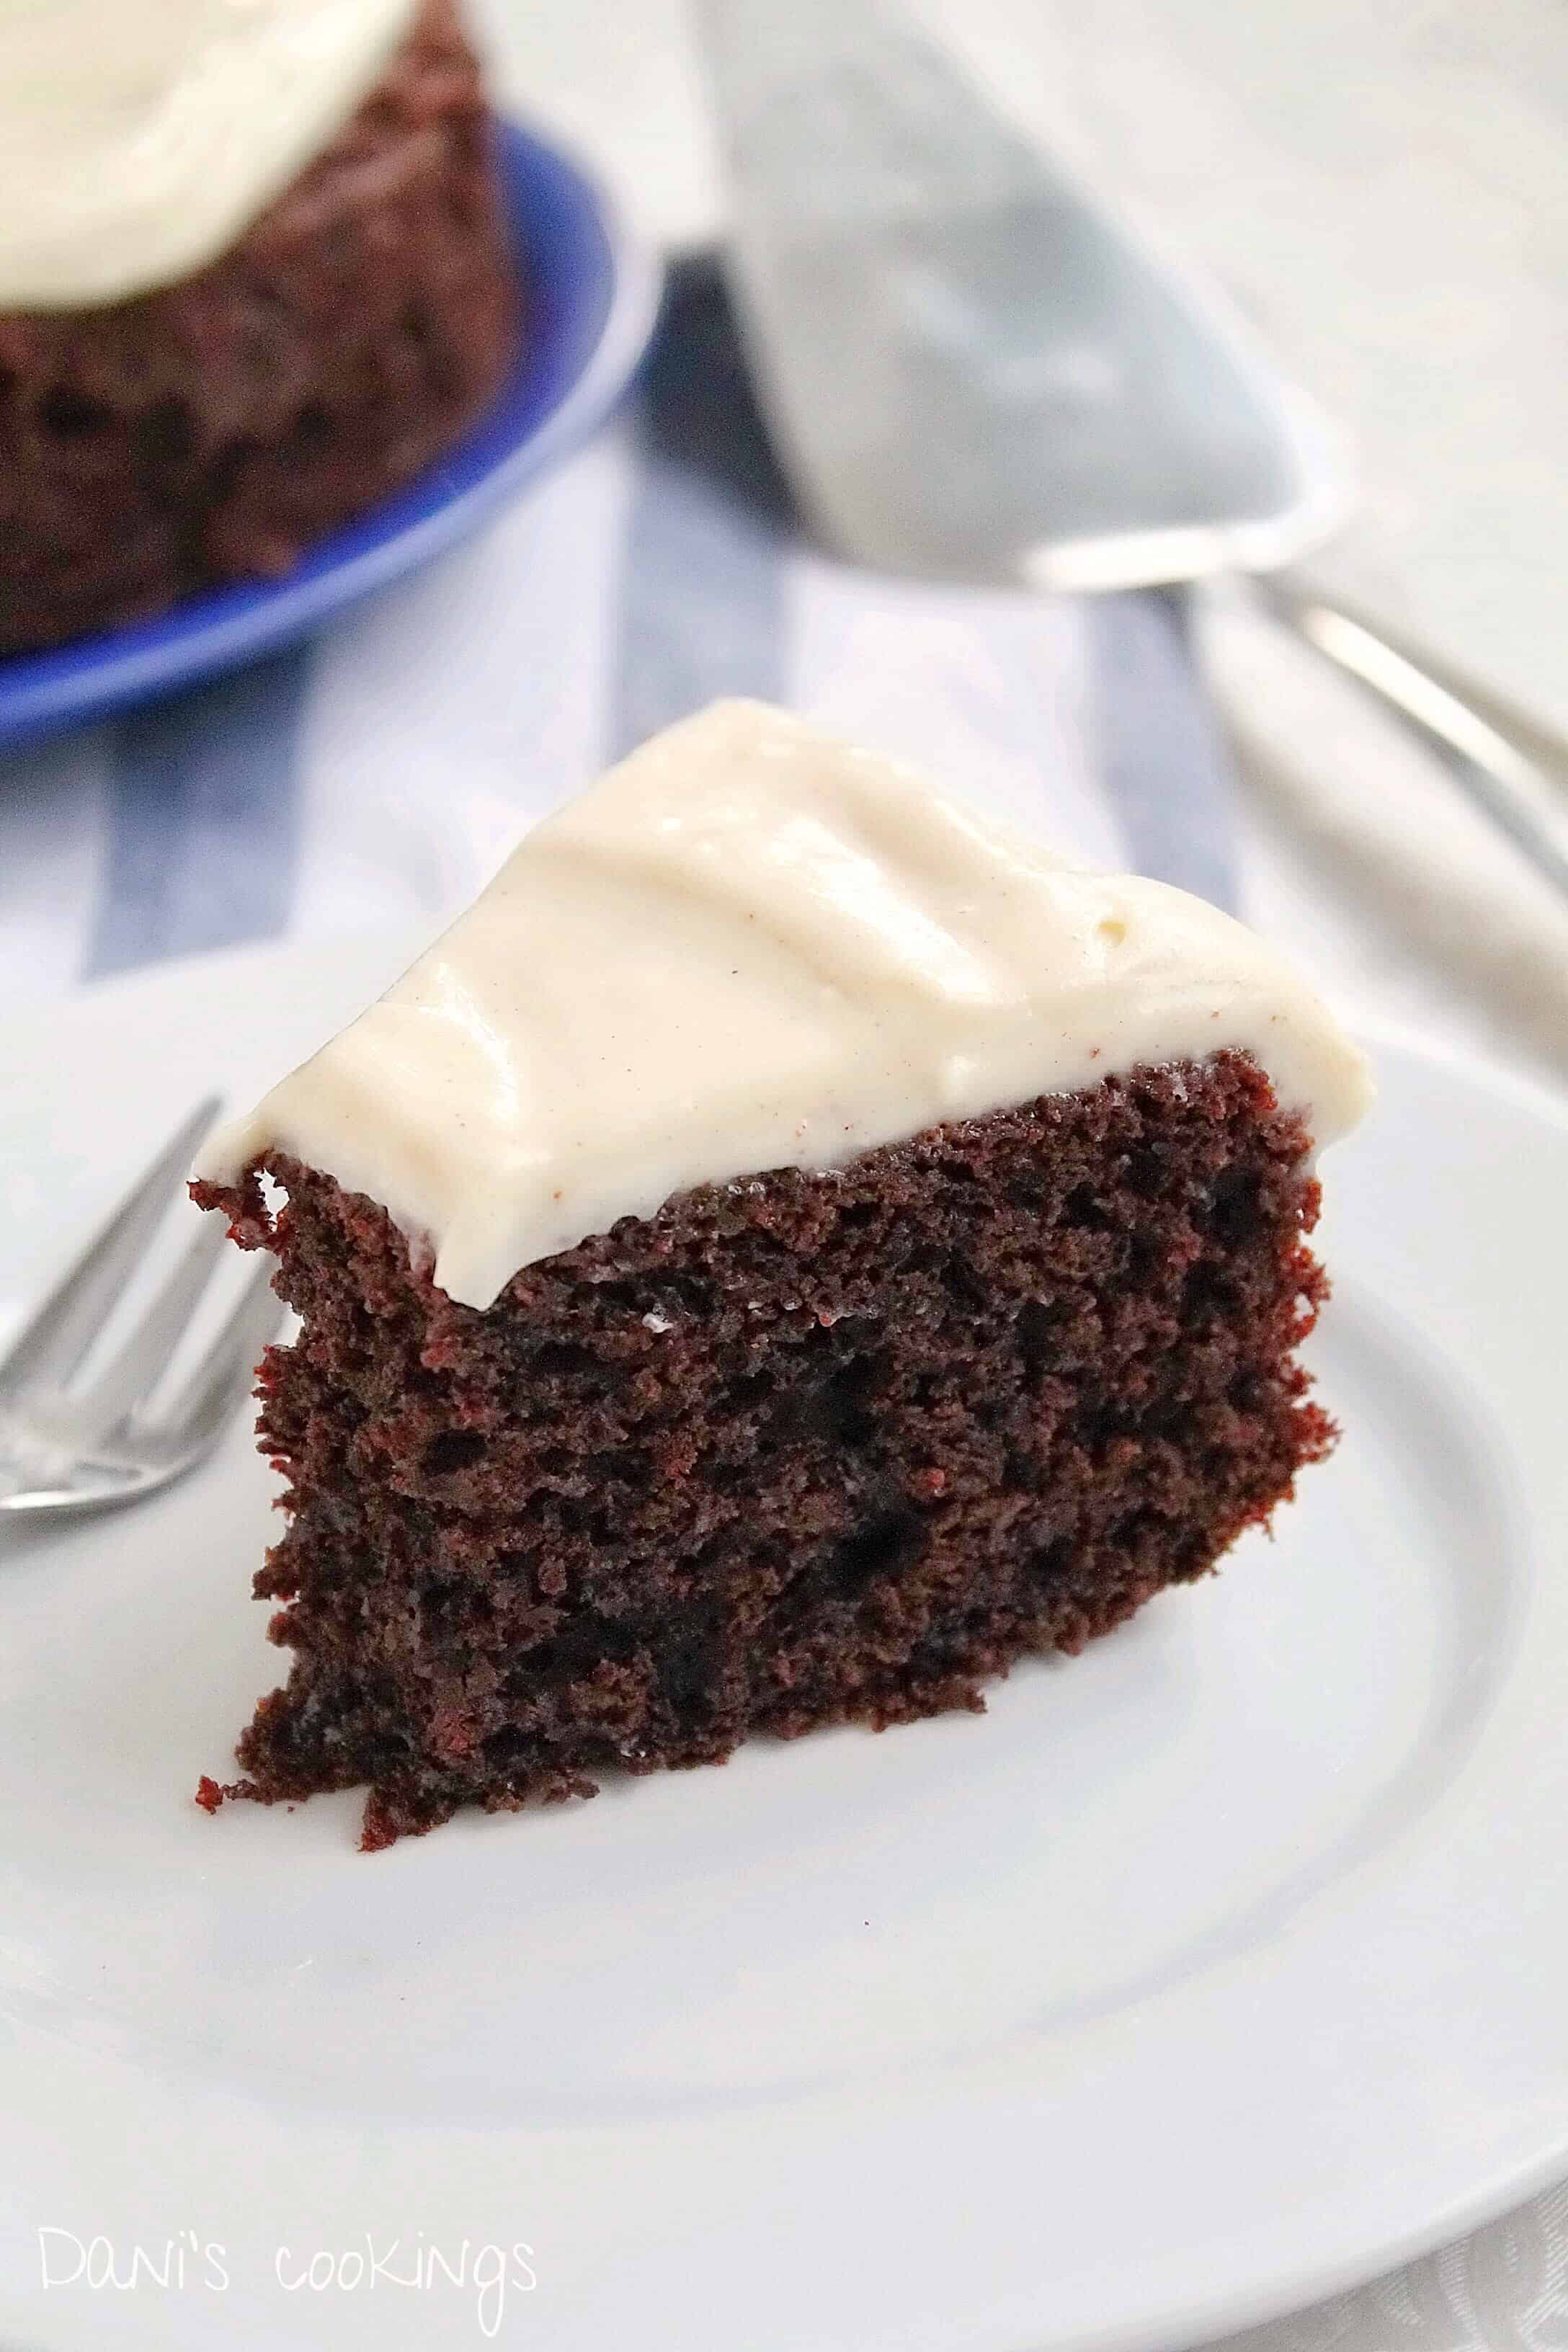 a slice of double chocolate cake being eaten